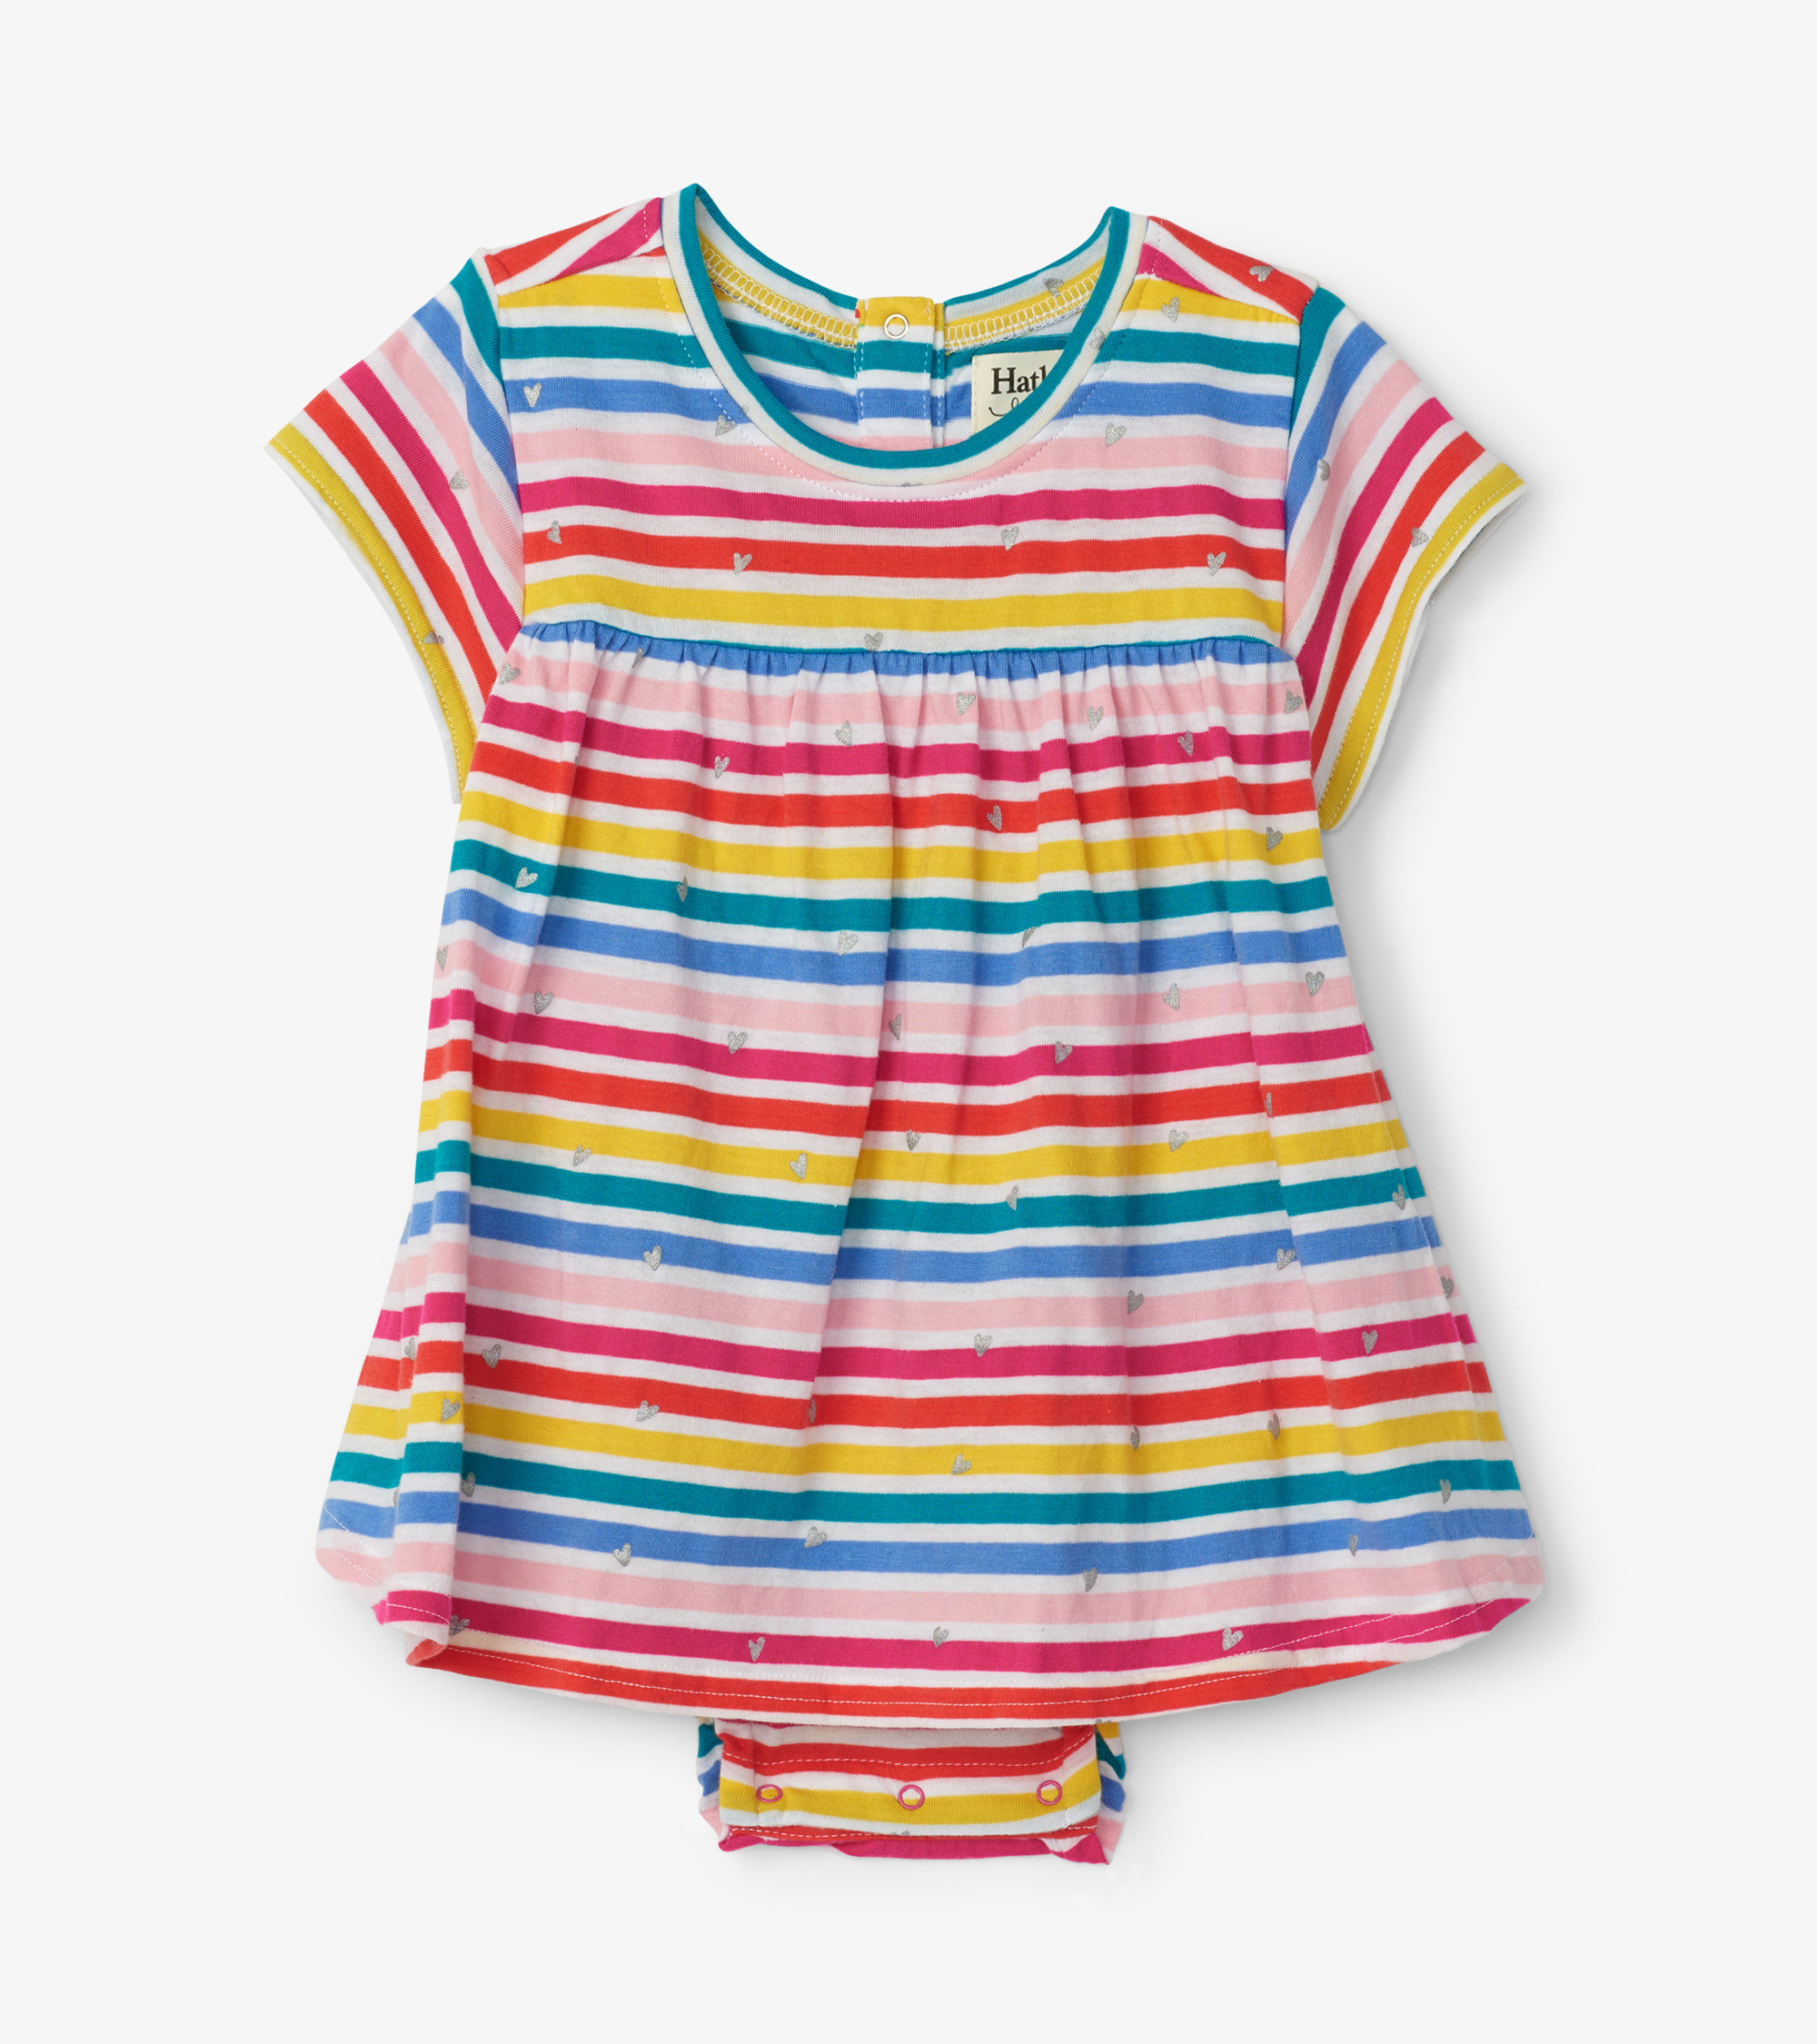 Hatley Rainbow Stripe Baby One-Piece Dress